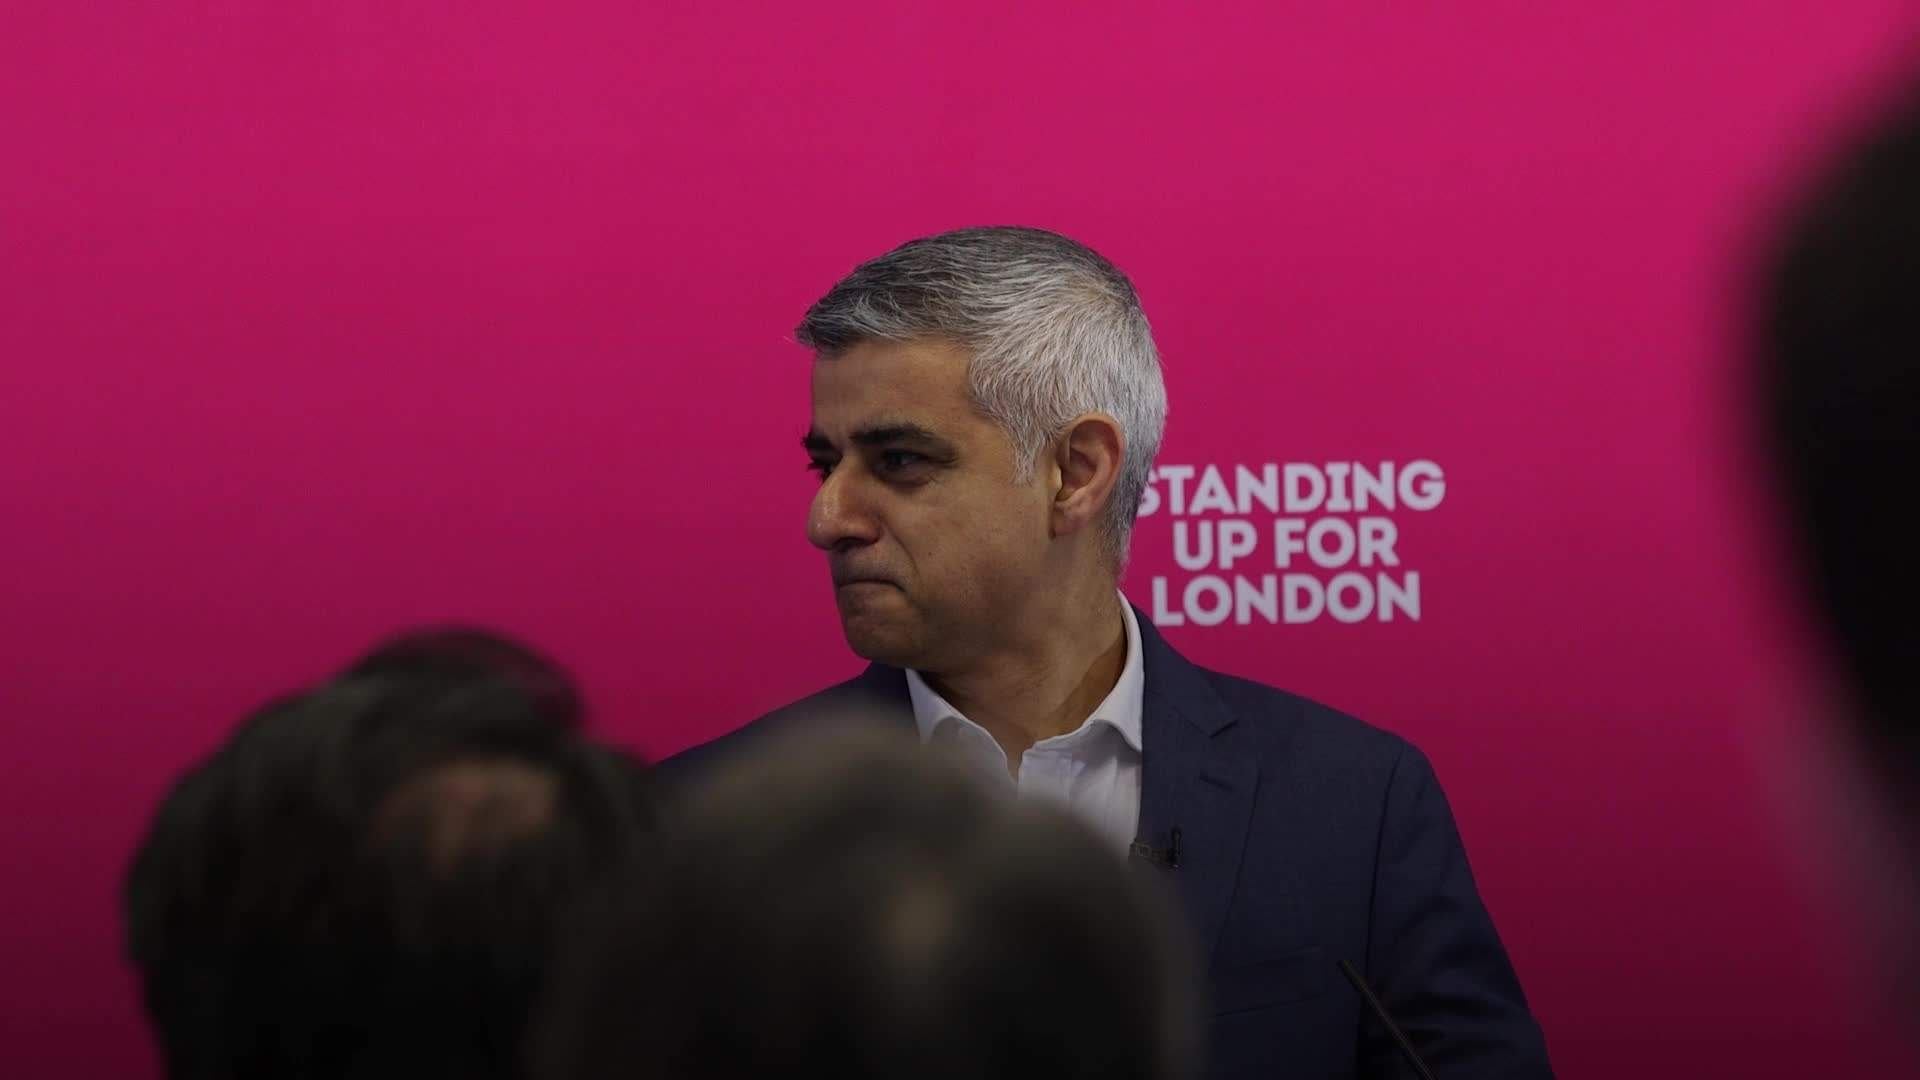 Khan puts rent controls at centre of London mayor re-election campaign